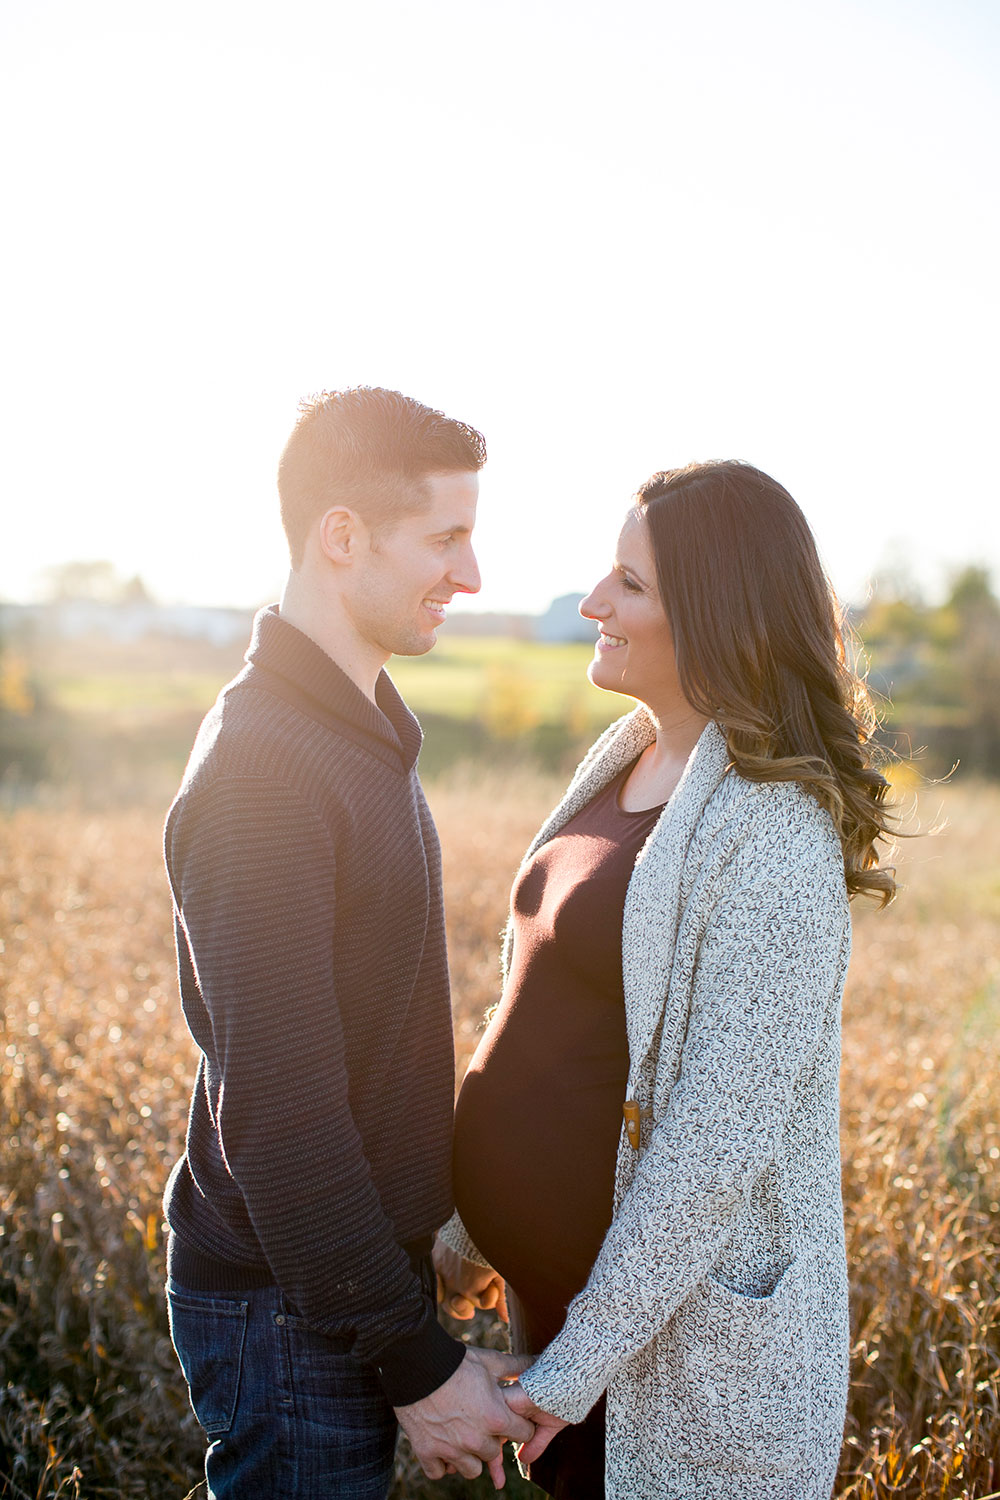 Winter-maternity-session-niagara-maternity-photographer-tree-farm-photos-photo-by-philosophy-studios-0020.jpg